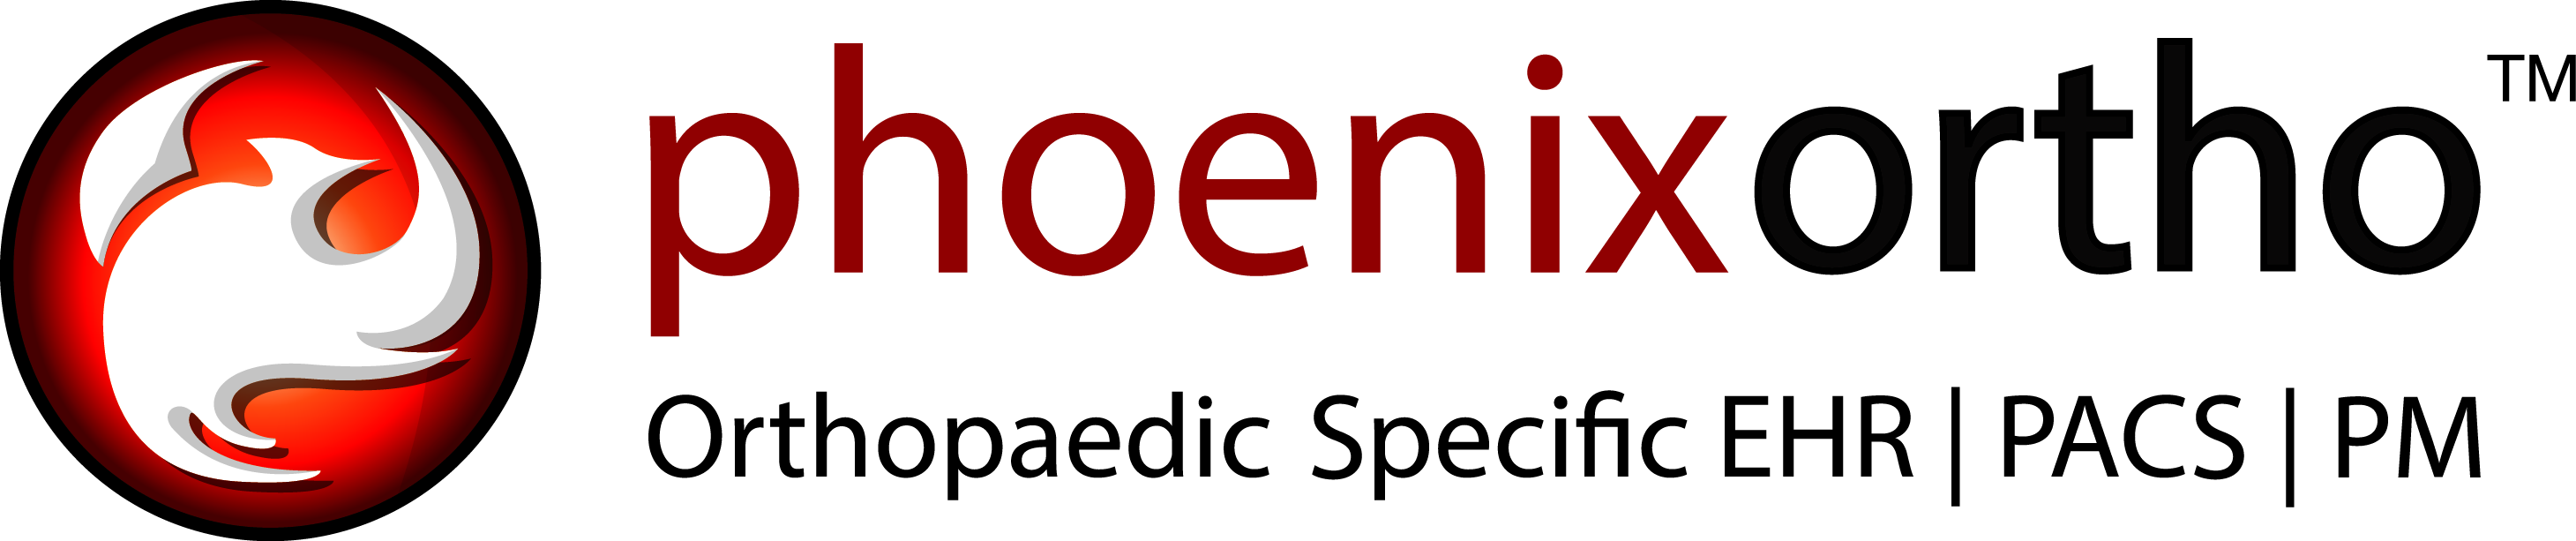 Phoenix Ortho EHR | PACS | PM